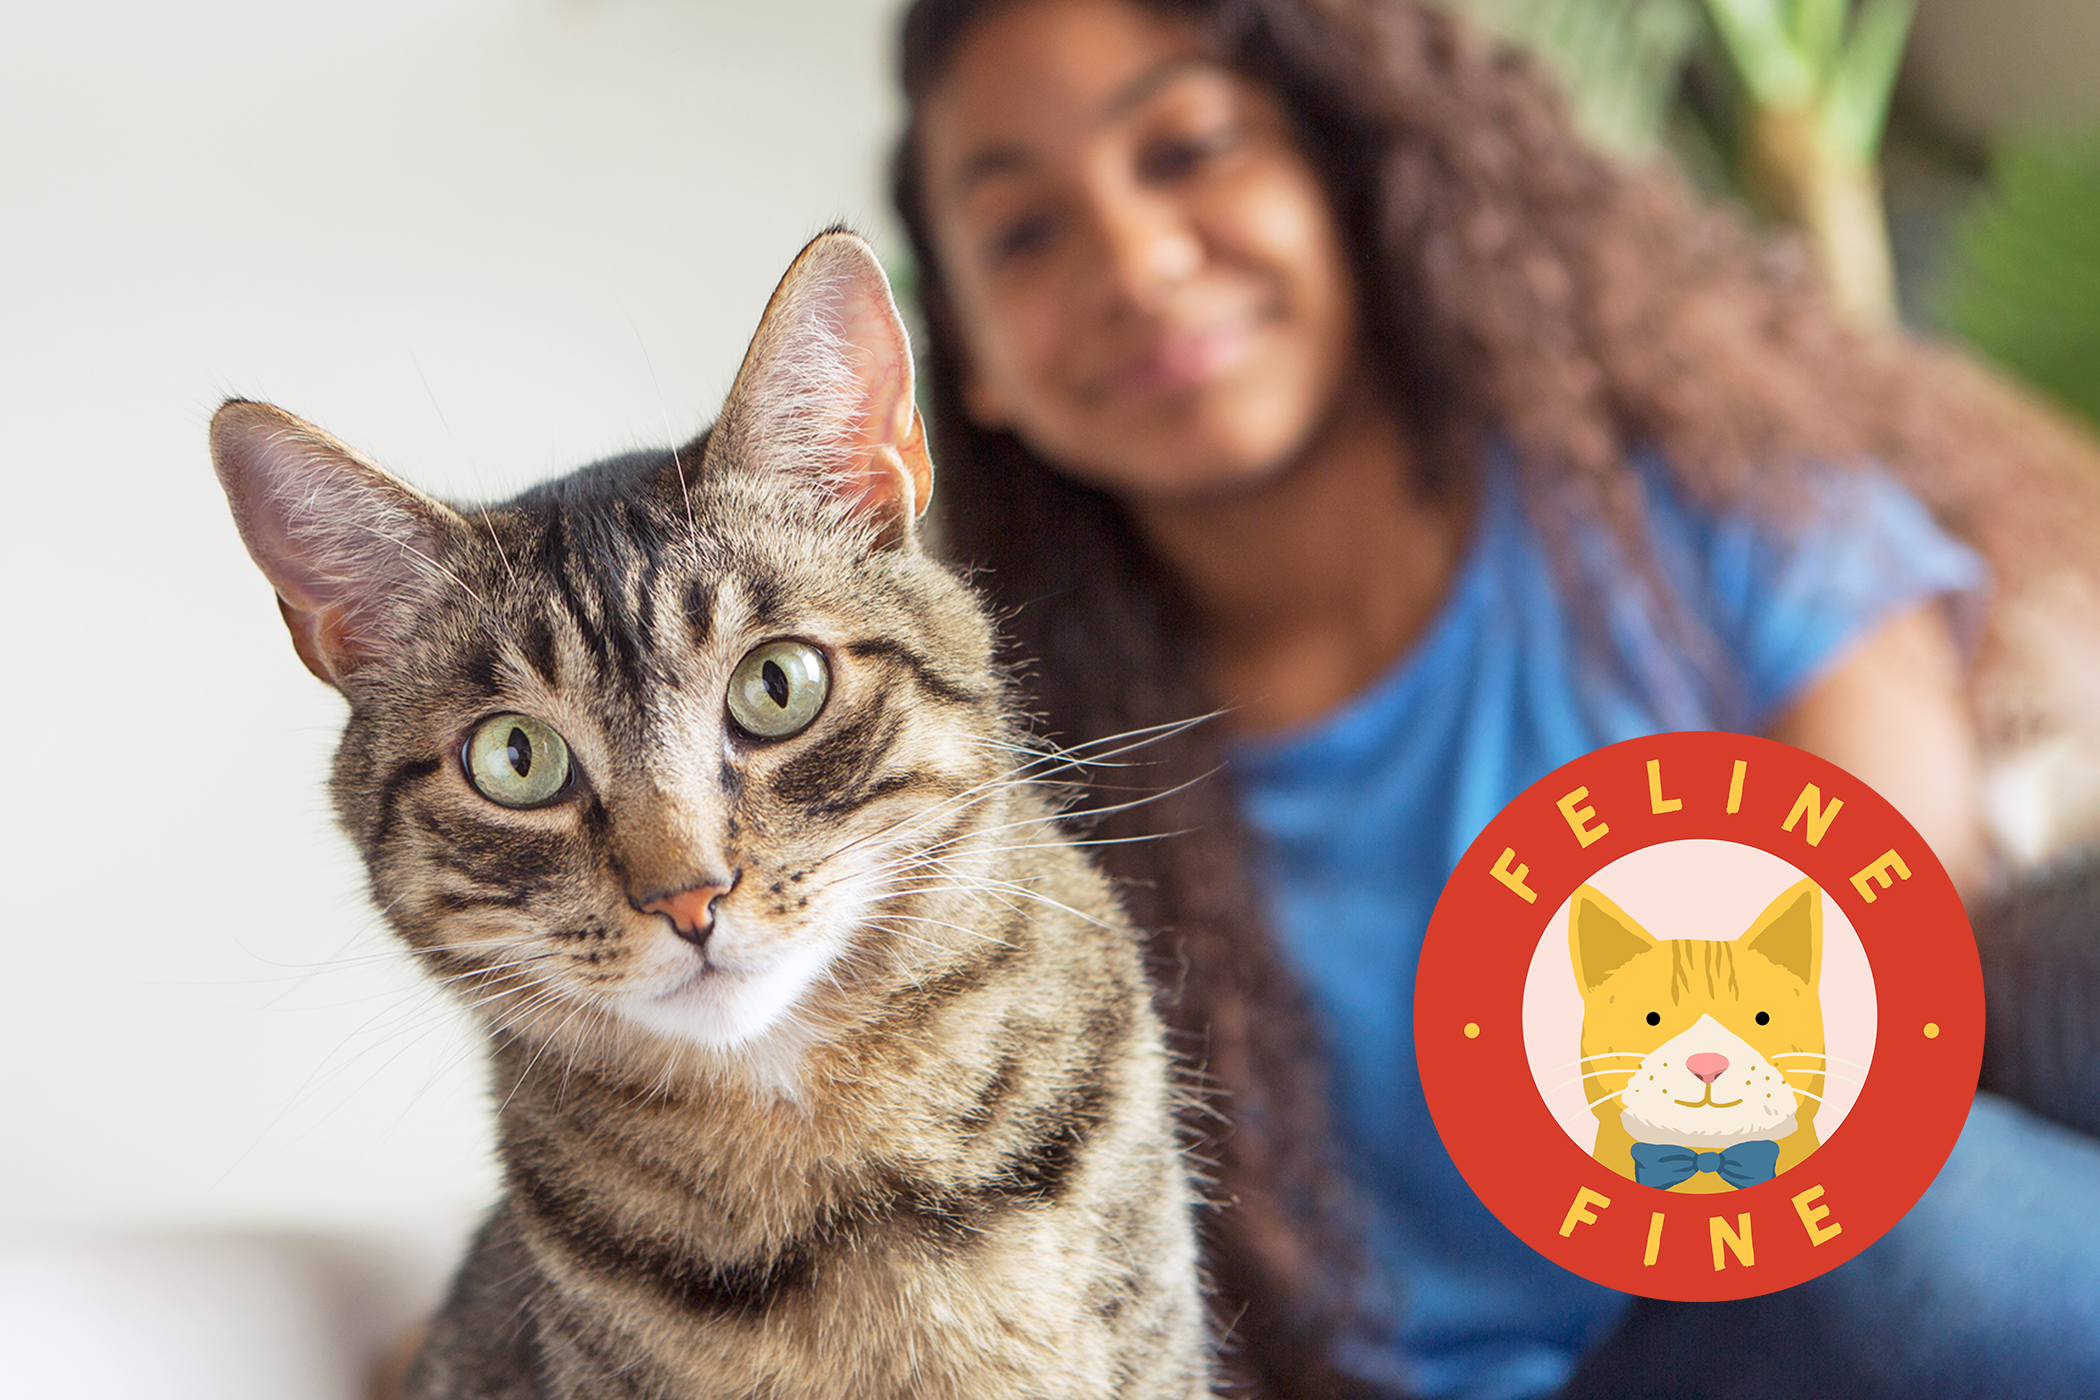 photo of a cat with anxiety sitting next to her owner with a feline fine logo in the corner